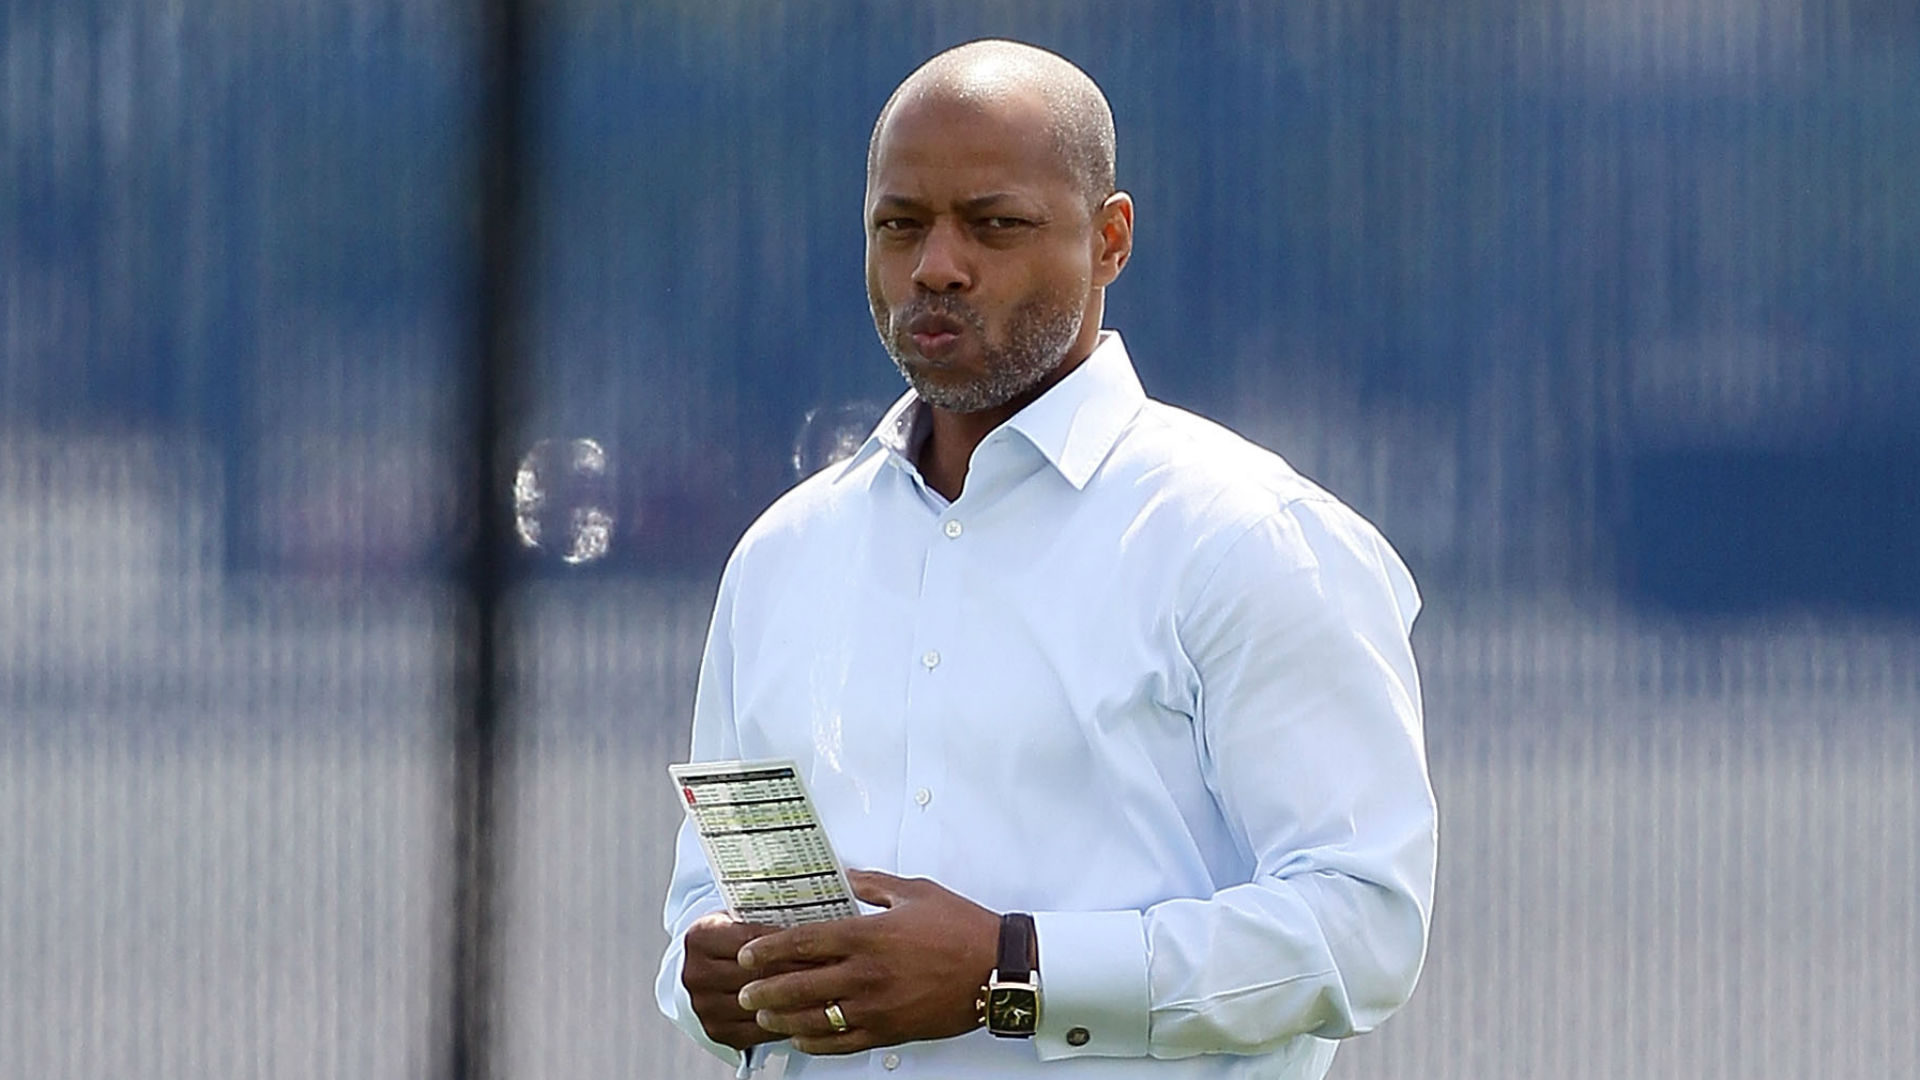 Giants GM Jerry Reese takes the blame for 1-6 start